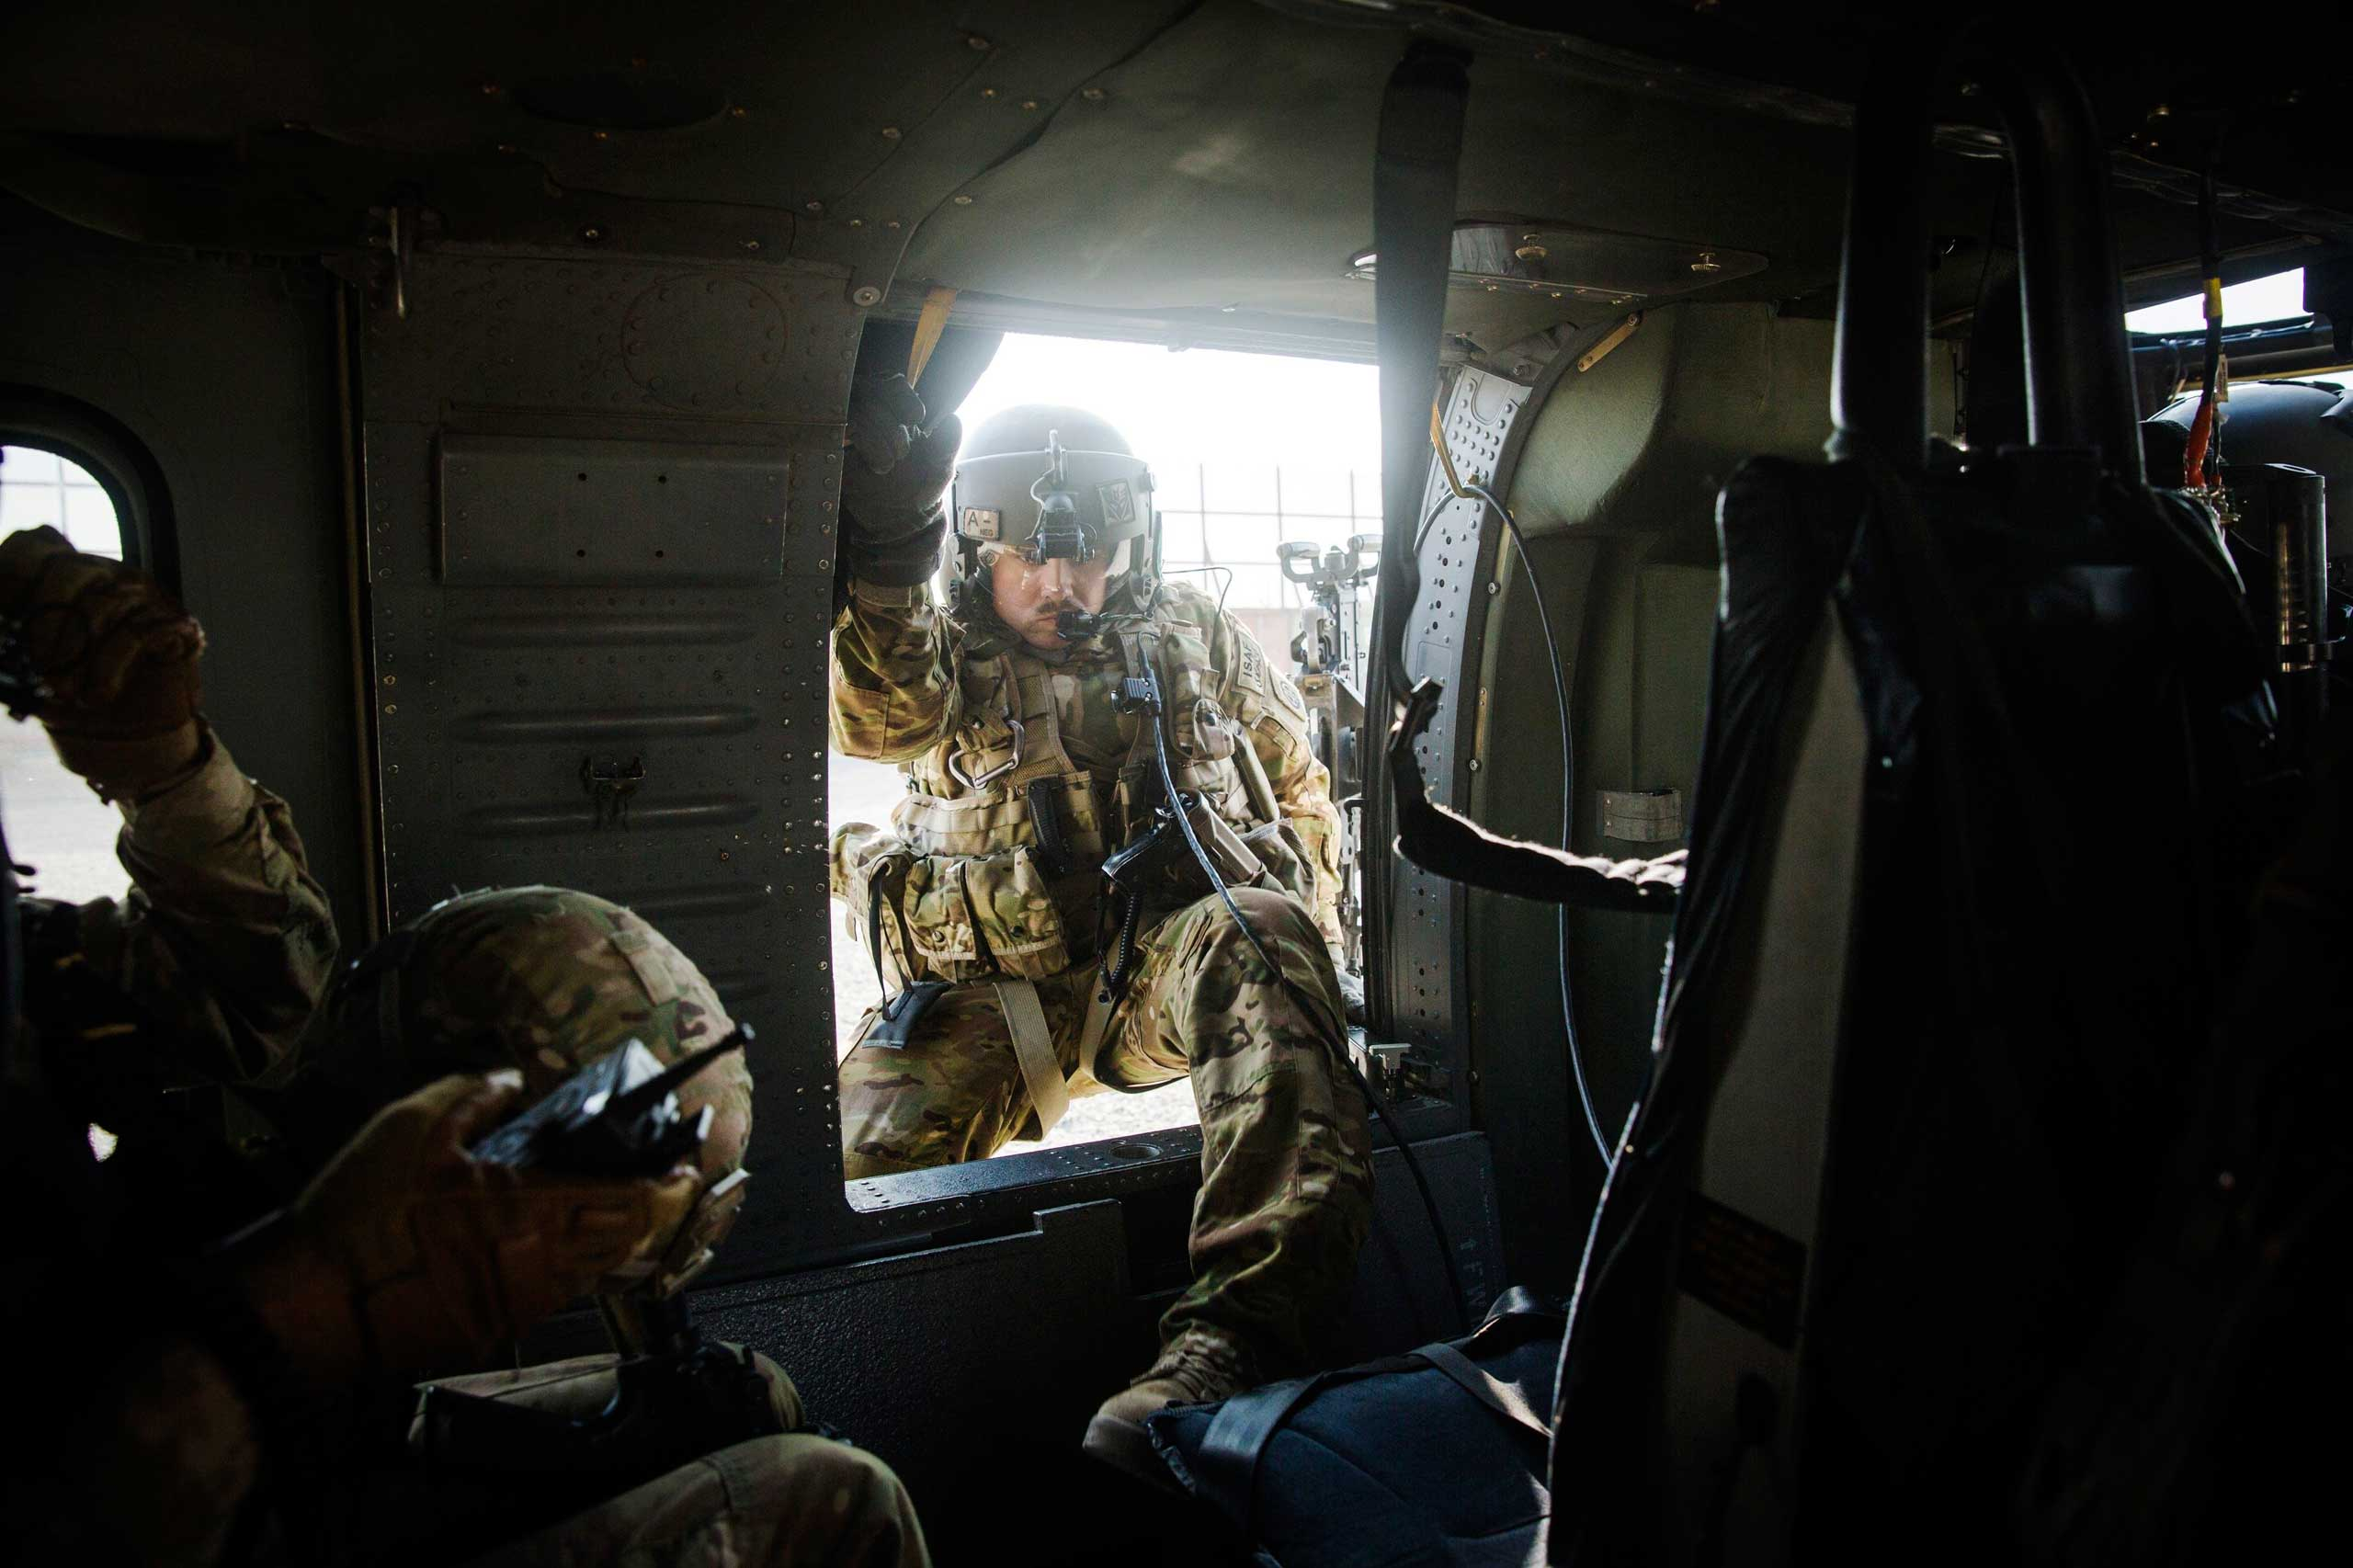 A crew member climbs into a U.S. Blackhawk helicopter before it takes off following a mission to take Brigadier General Christopher Bentley to inspect an Afghan National police installation in the Nangarhar province of Afghanistan on Dec. 16, 2014.